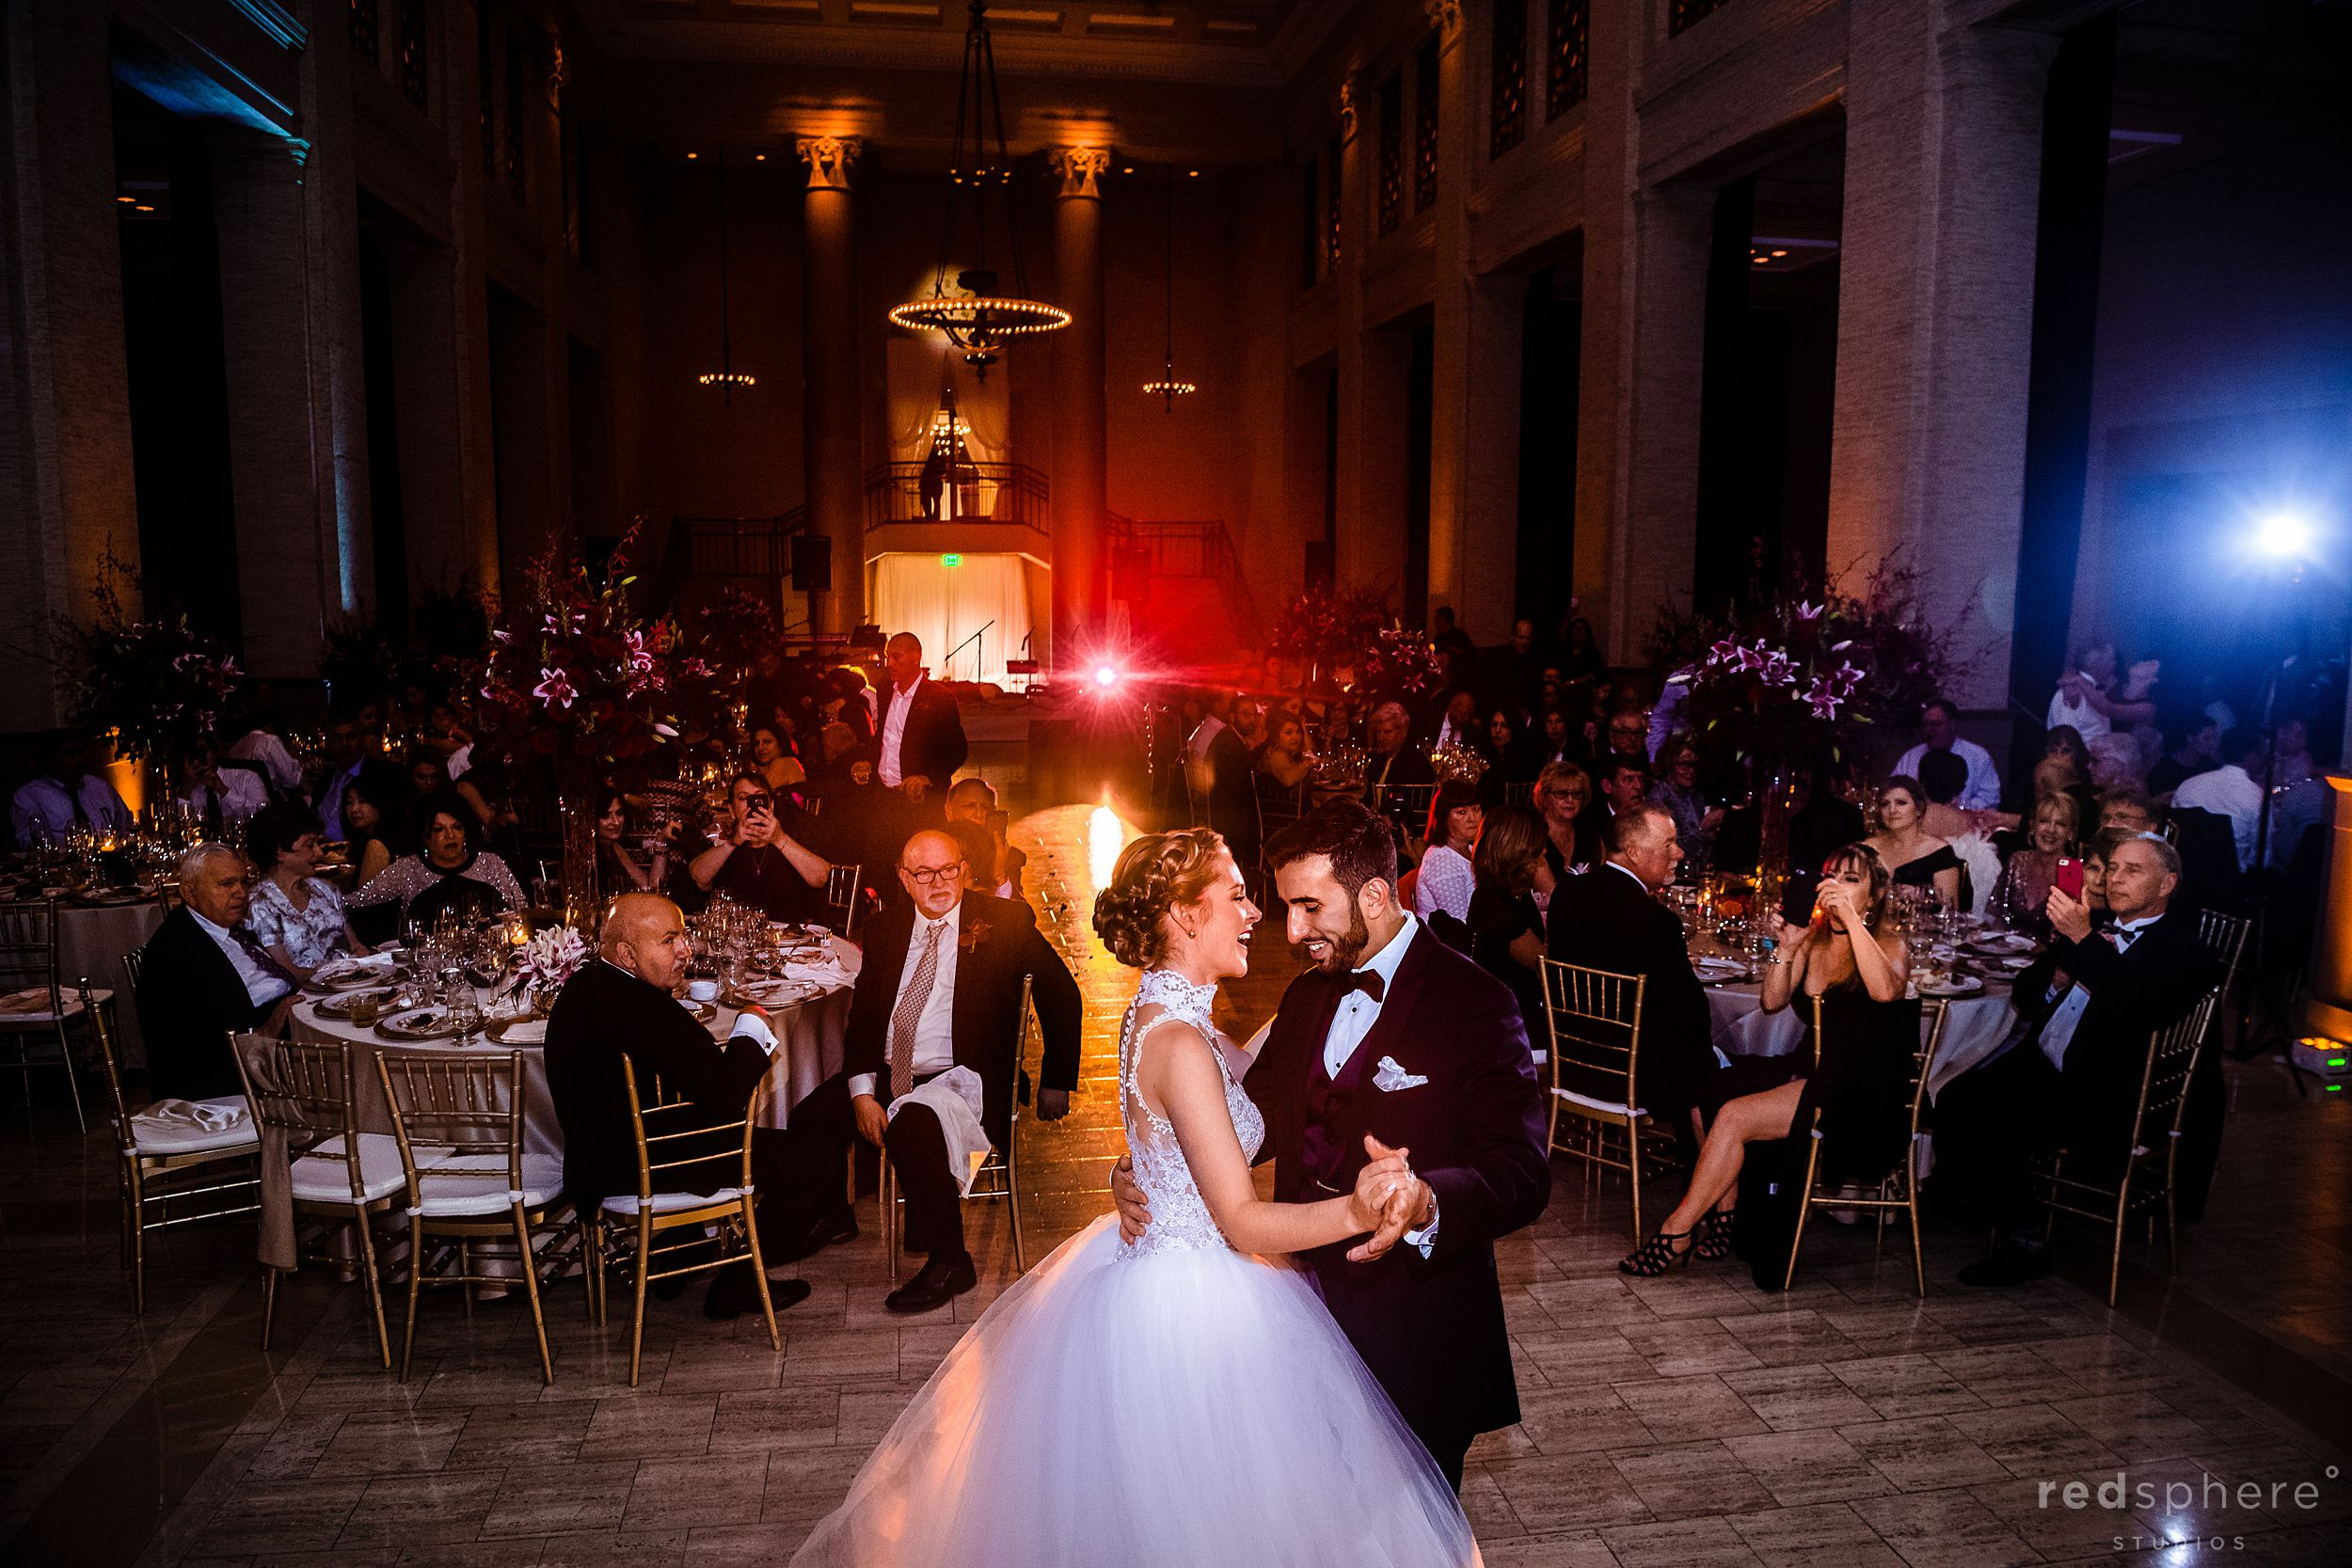 Bride and groom first dance at wedding in Bently Reserve